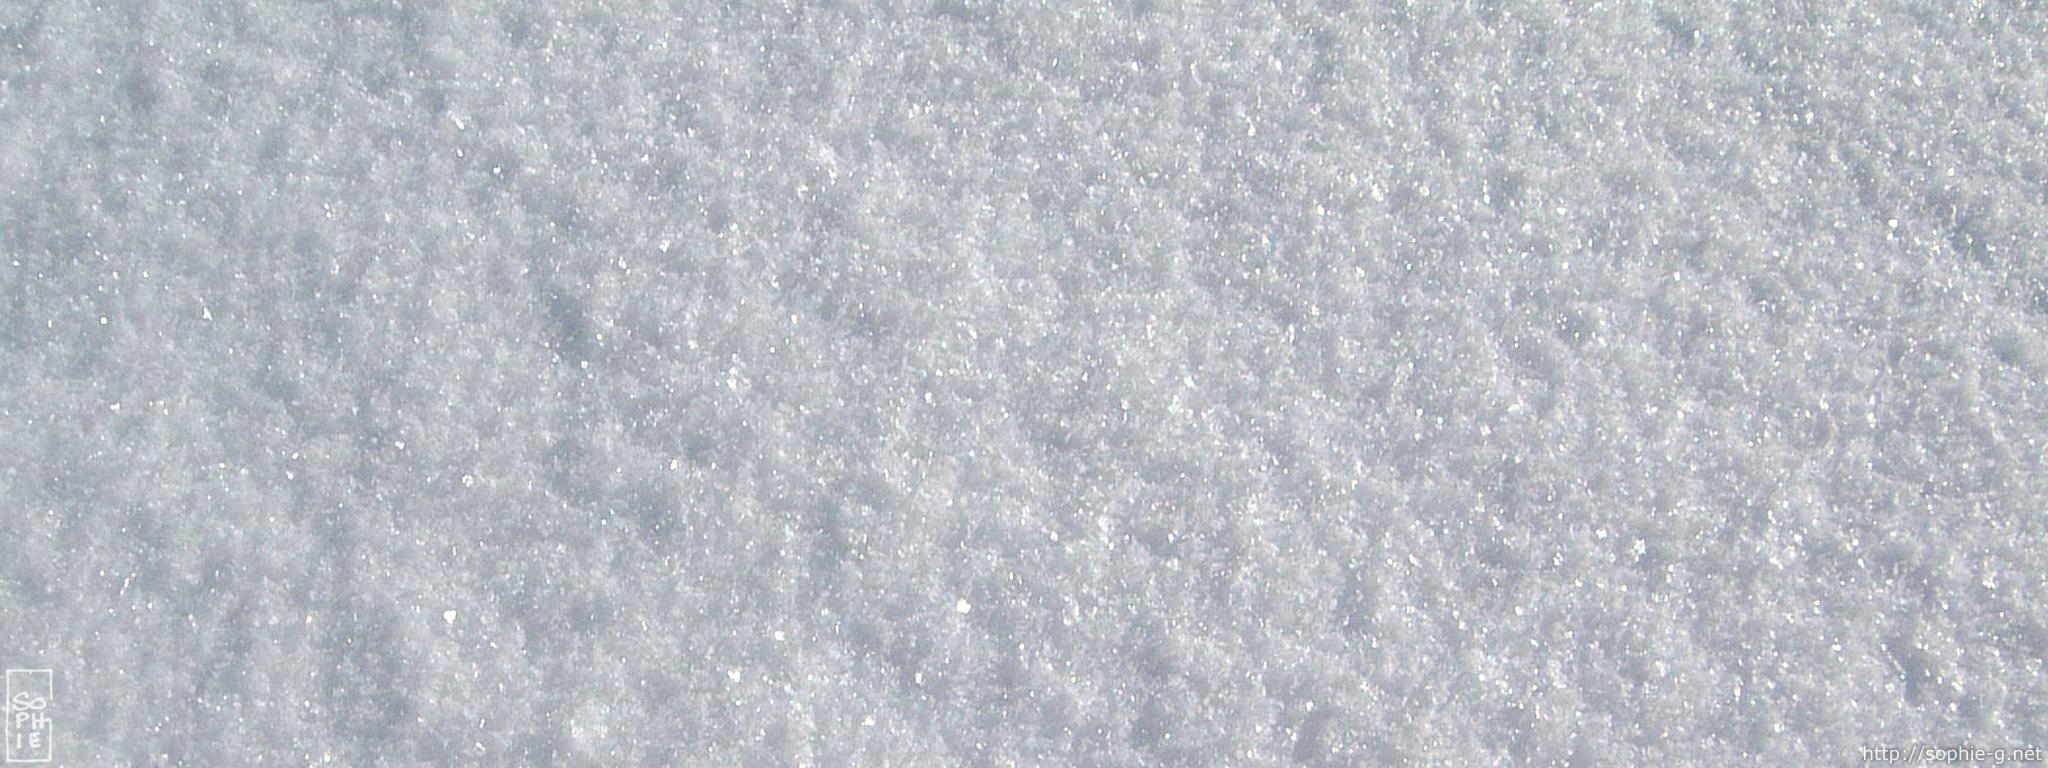 Snow ��� 2048��768 desktop wallpaper - Neige ��� Fond d��cran 2048��768.